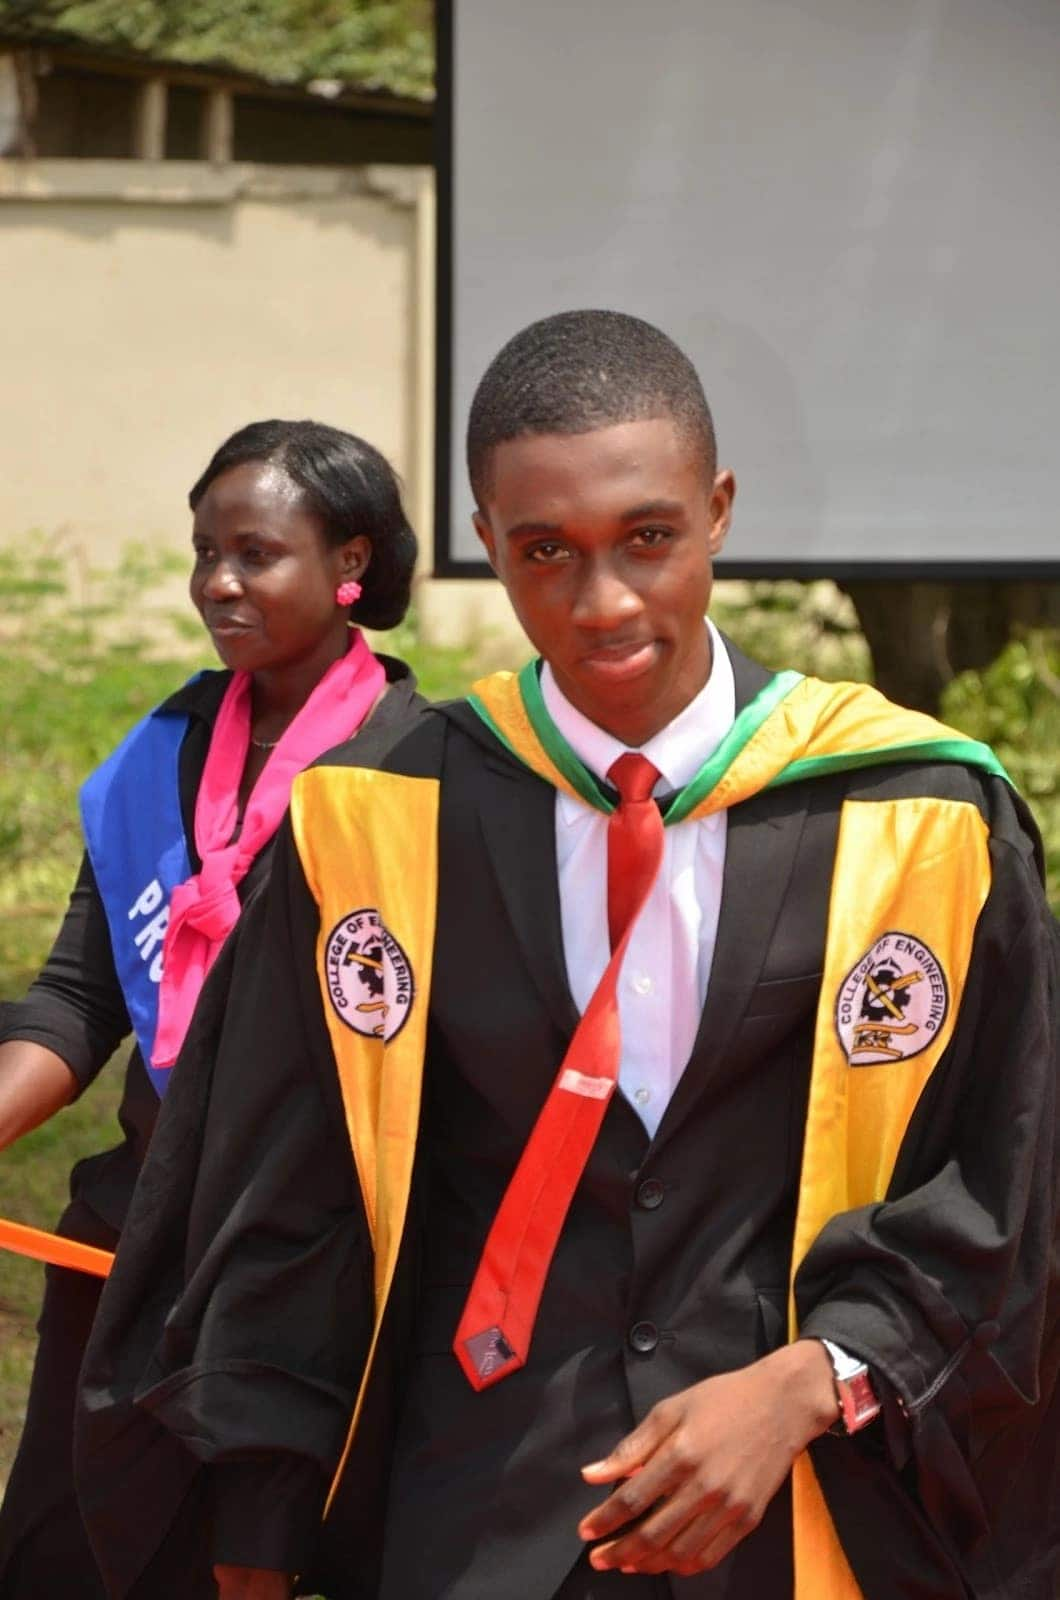 accra institute of technology admission form list of courses offered in accra institute of technology accra institute of technology accredited courses offered by accra institute of technology